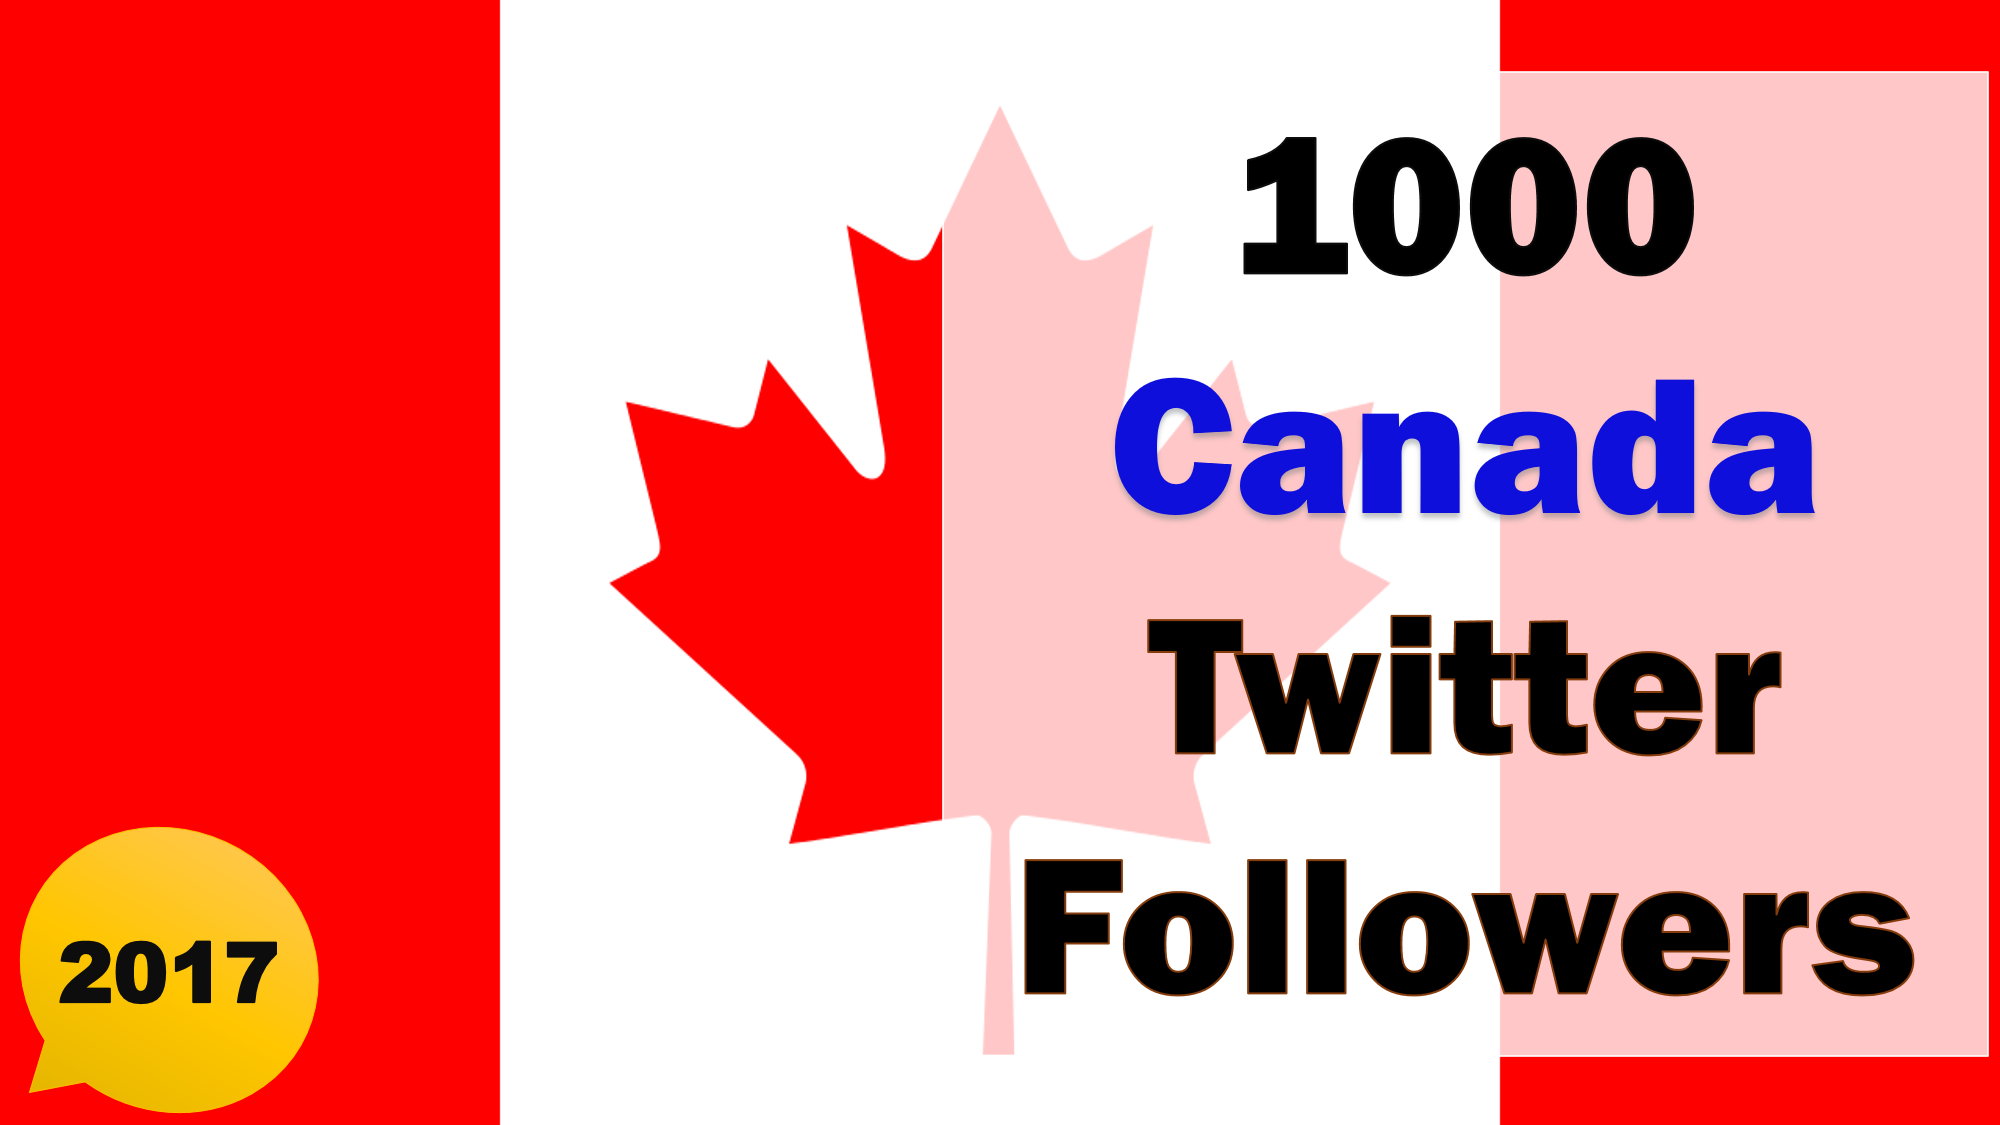 Promote and Provide 1000 Canadian Twitter Followers